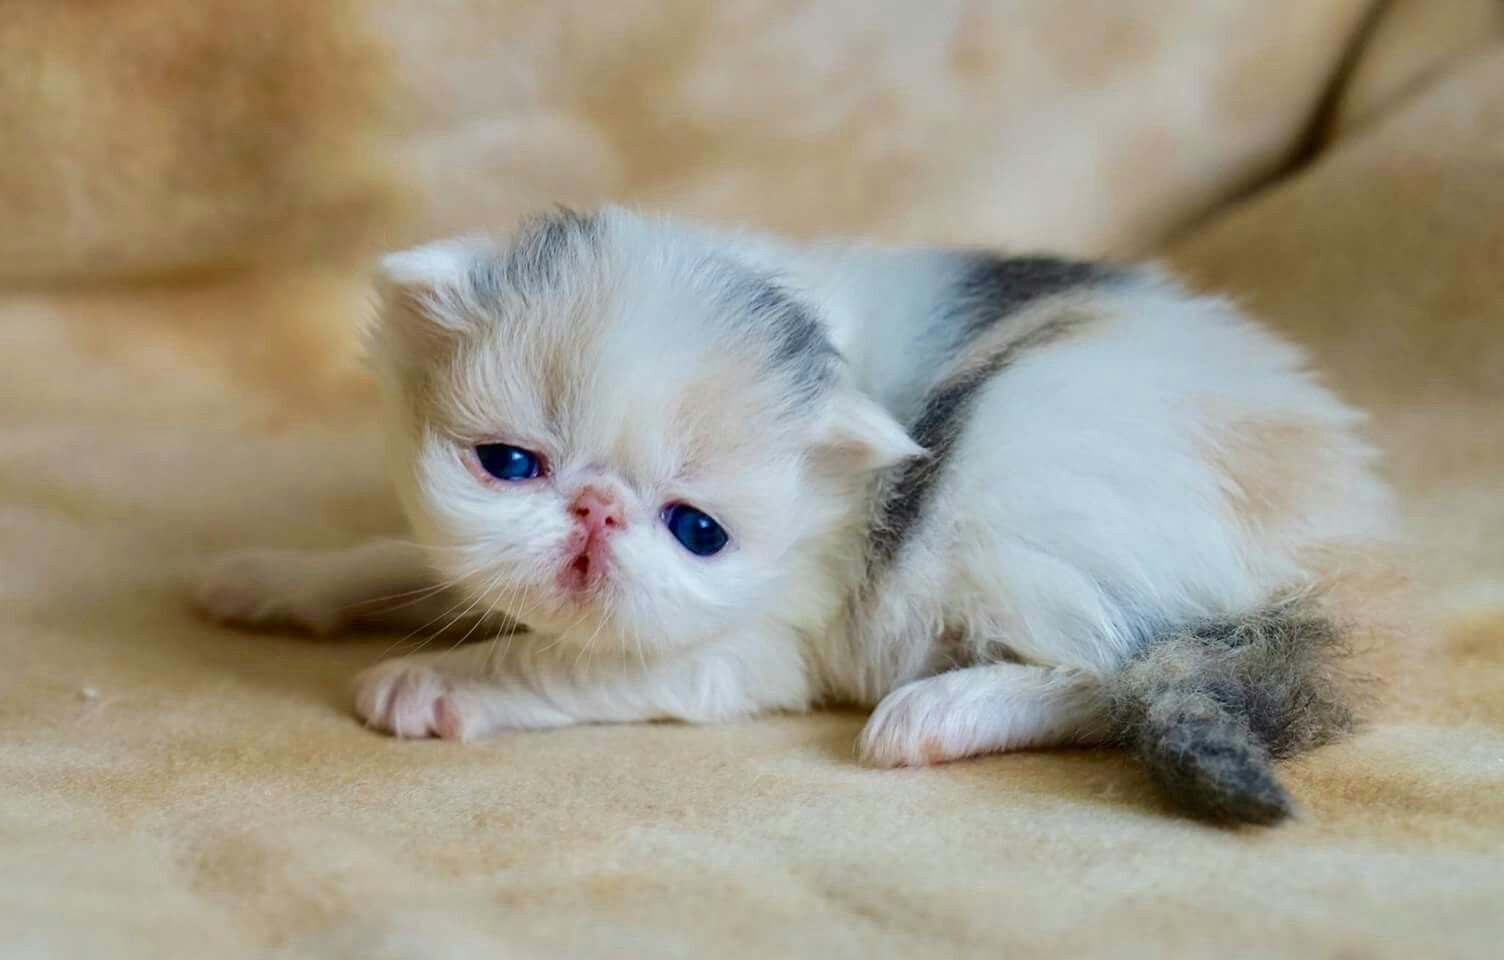 I Have A Beautiful 3 Week Old Dilute Calico Pure Persian Girl That I Am Going To Be Making Available To A Persian Kittens Teacup Persian Cats Persian Cat White